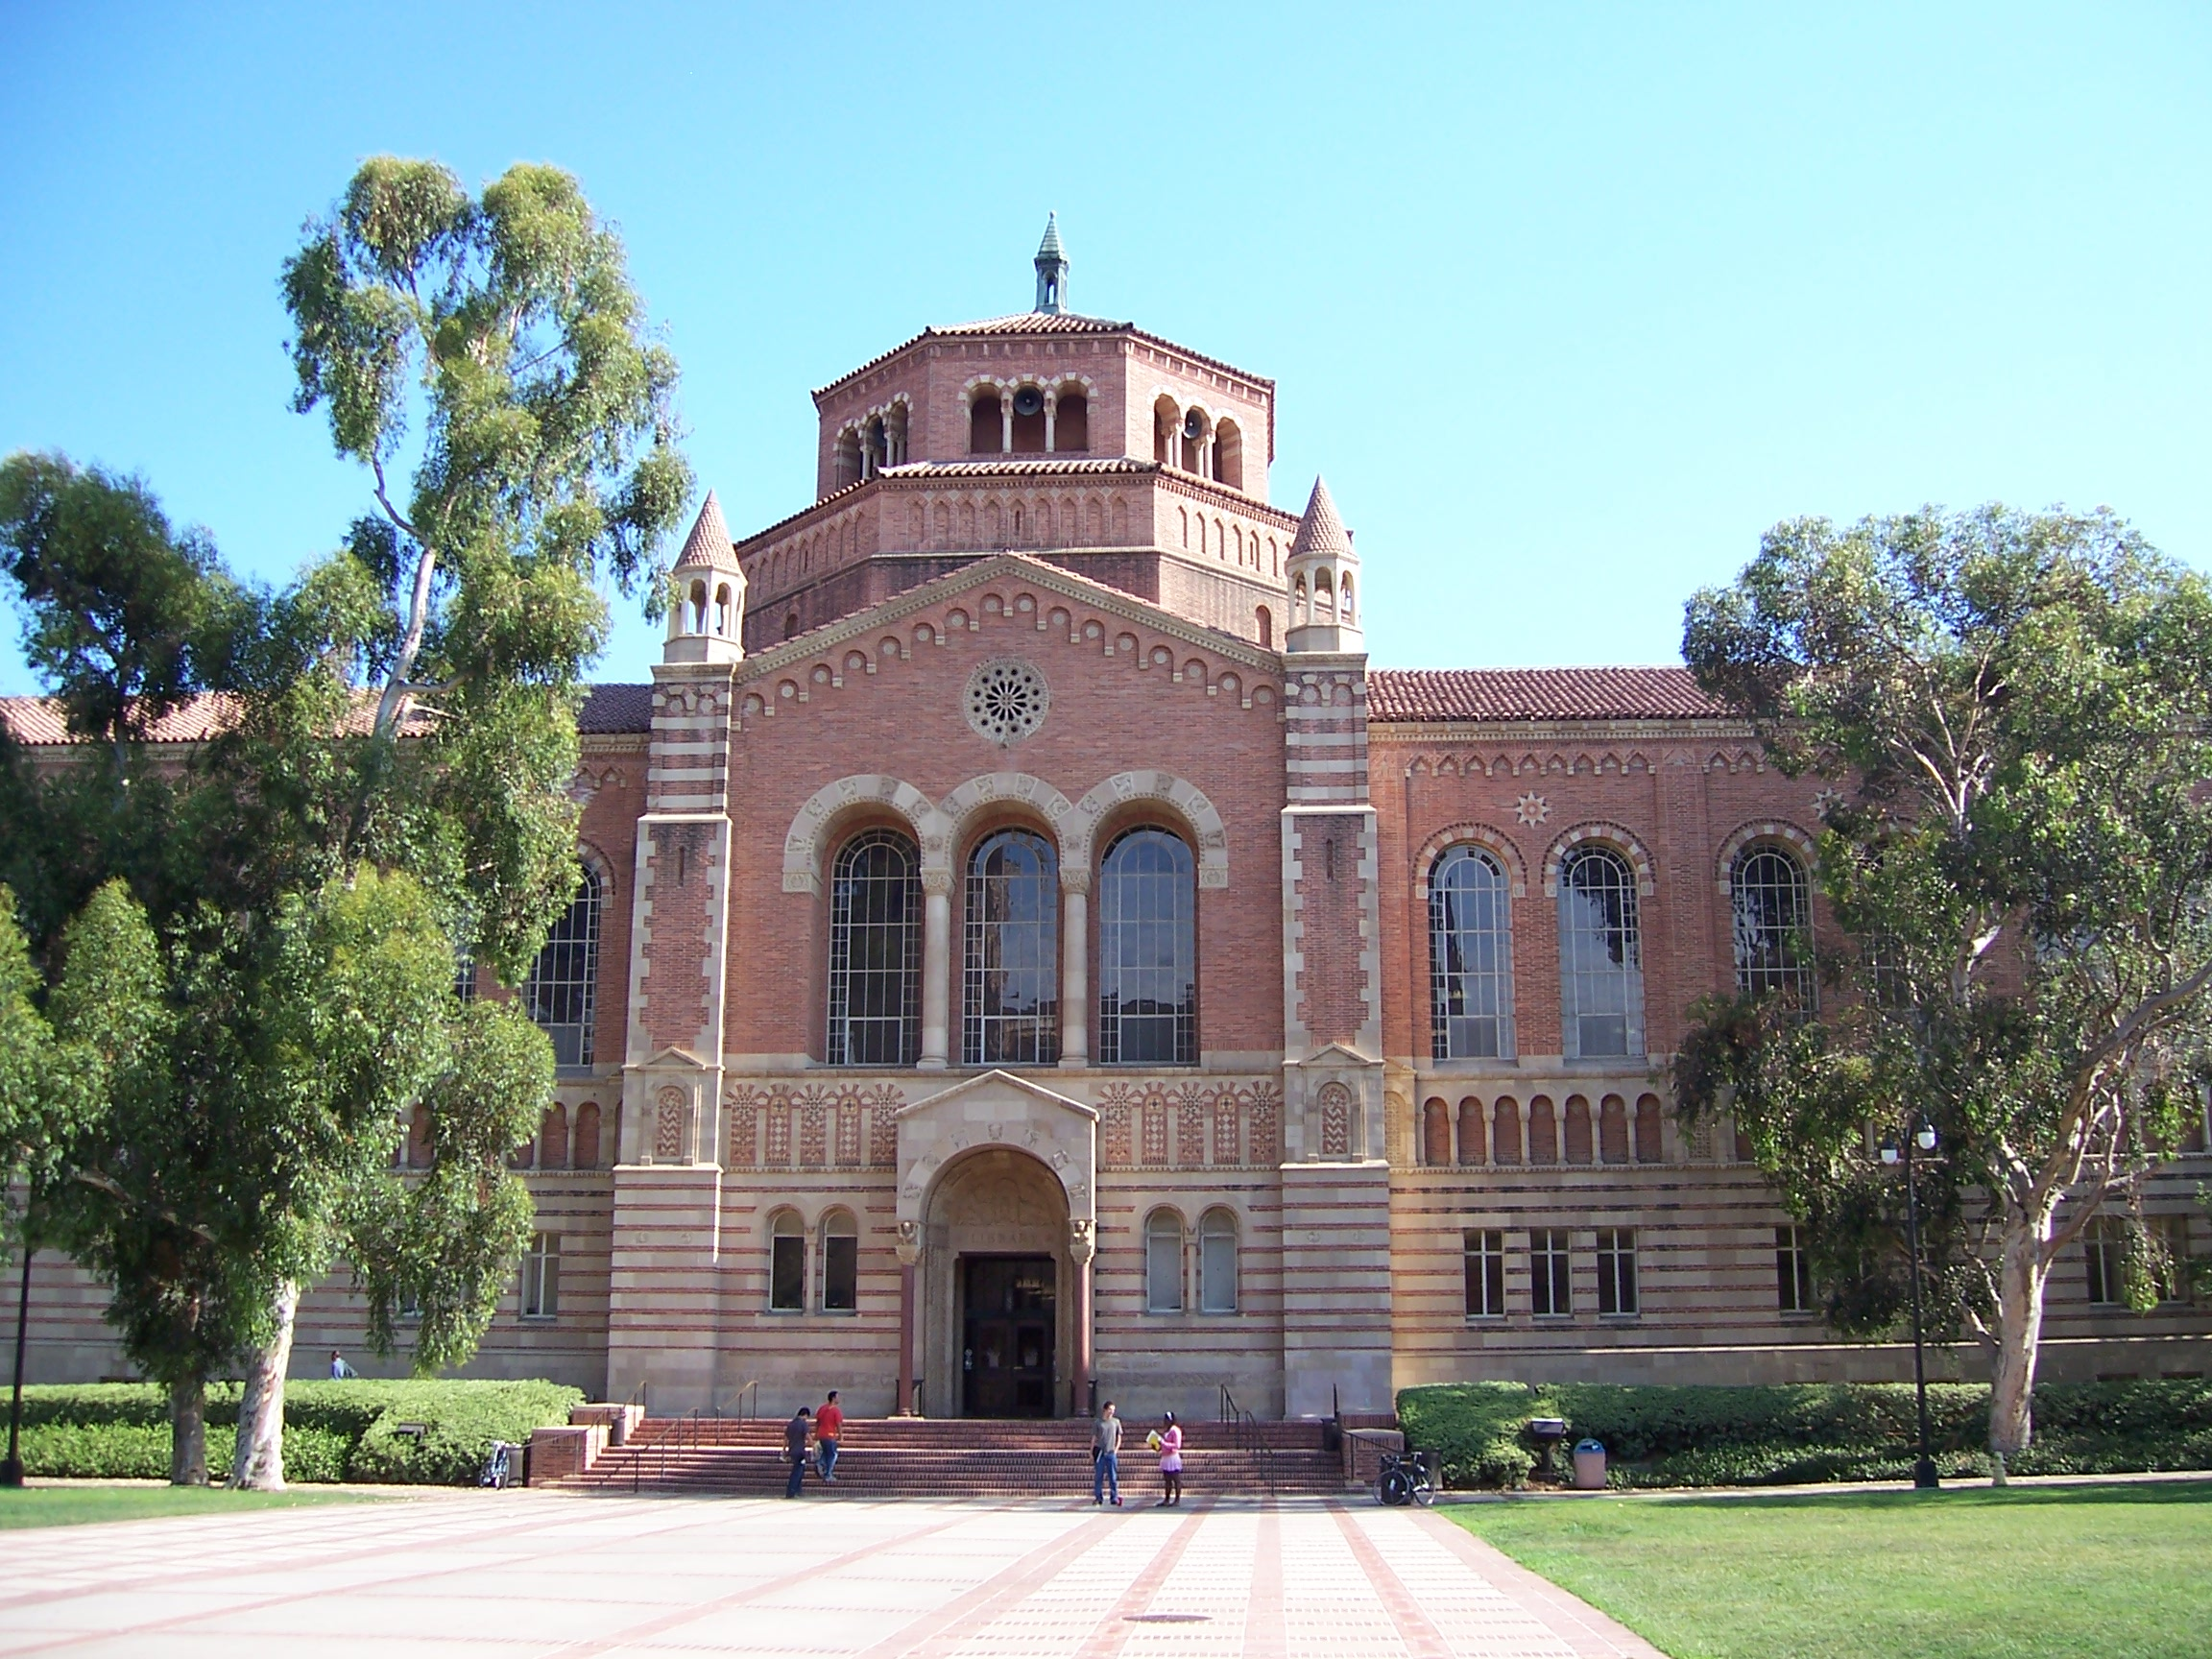 Powell Library